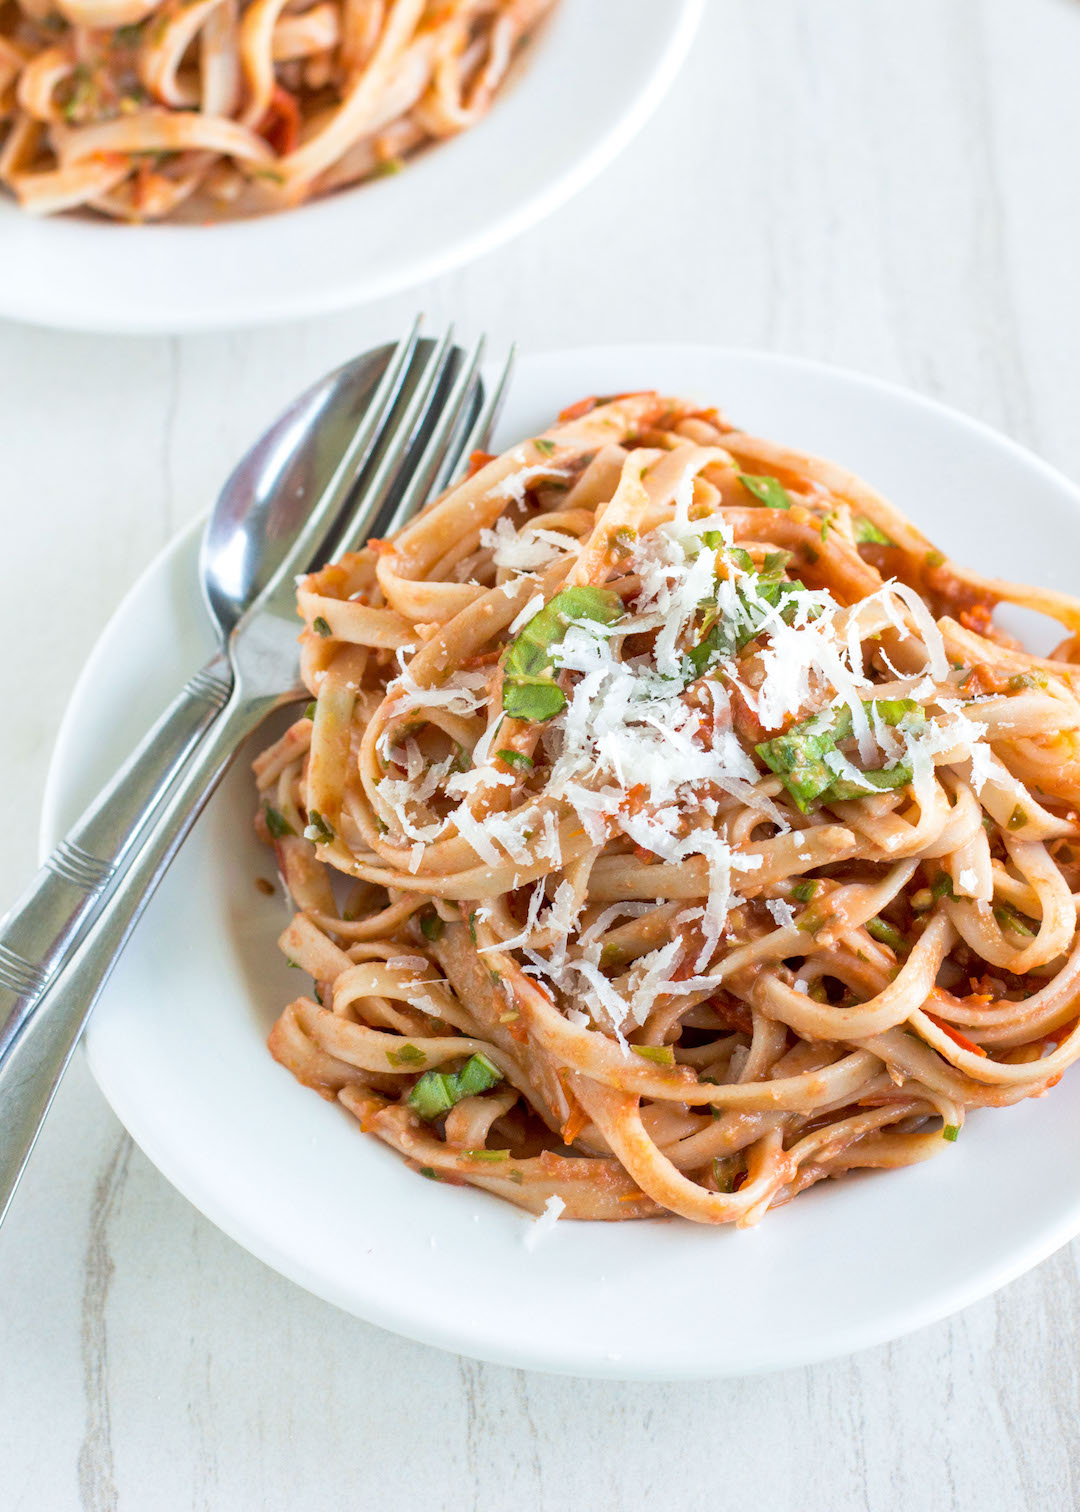 Roasted Tomato and Walnut Pesto Pasta | nourishedtheblog.com | This Roasted Tomato and Walnut Pesto Pasta recipe is a gluten free and vegetarian-friendly pasta dish that everyone will love made with tomatoes, garlic, fresh herbs and walnuts served over your favourite gluten free pasta.